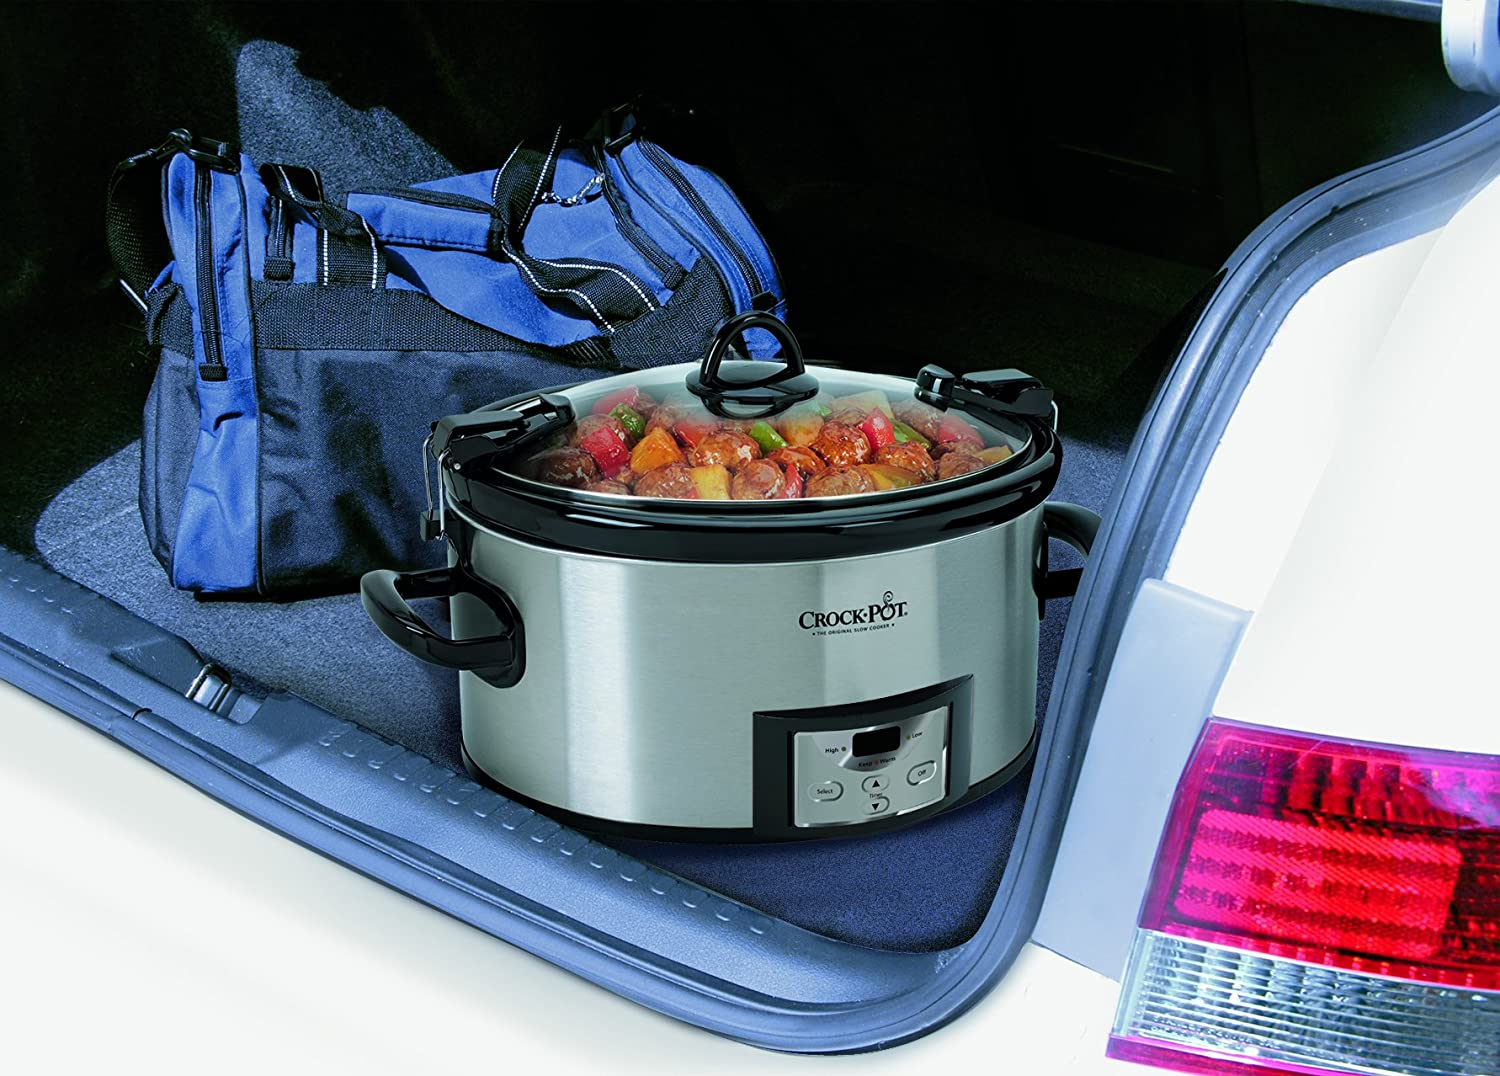 Amazon.com: Crock-Pot 6-Quart Programmable Cook & Carry Slow Cooker with Digital Timer, Stainless Steel, SCCPVL610-S: Kitchen & Dining